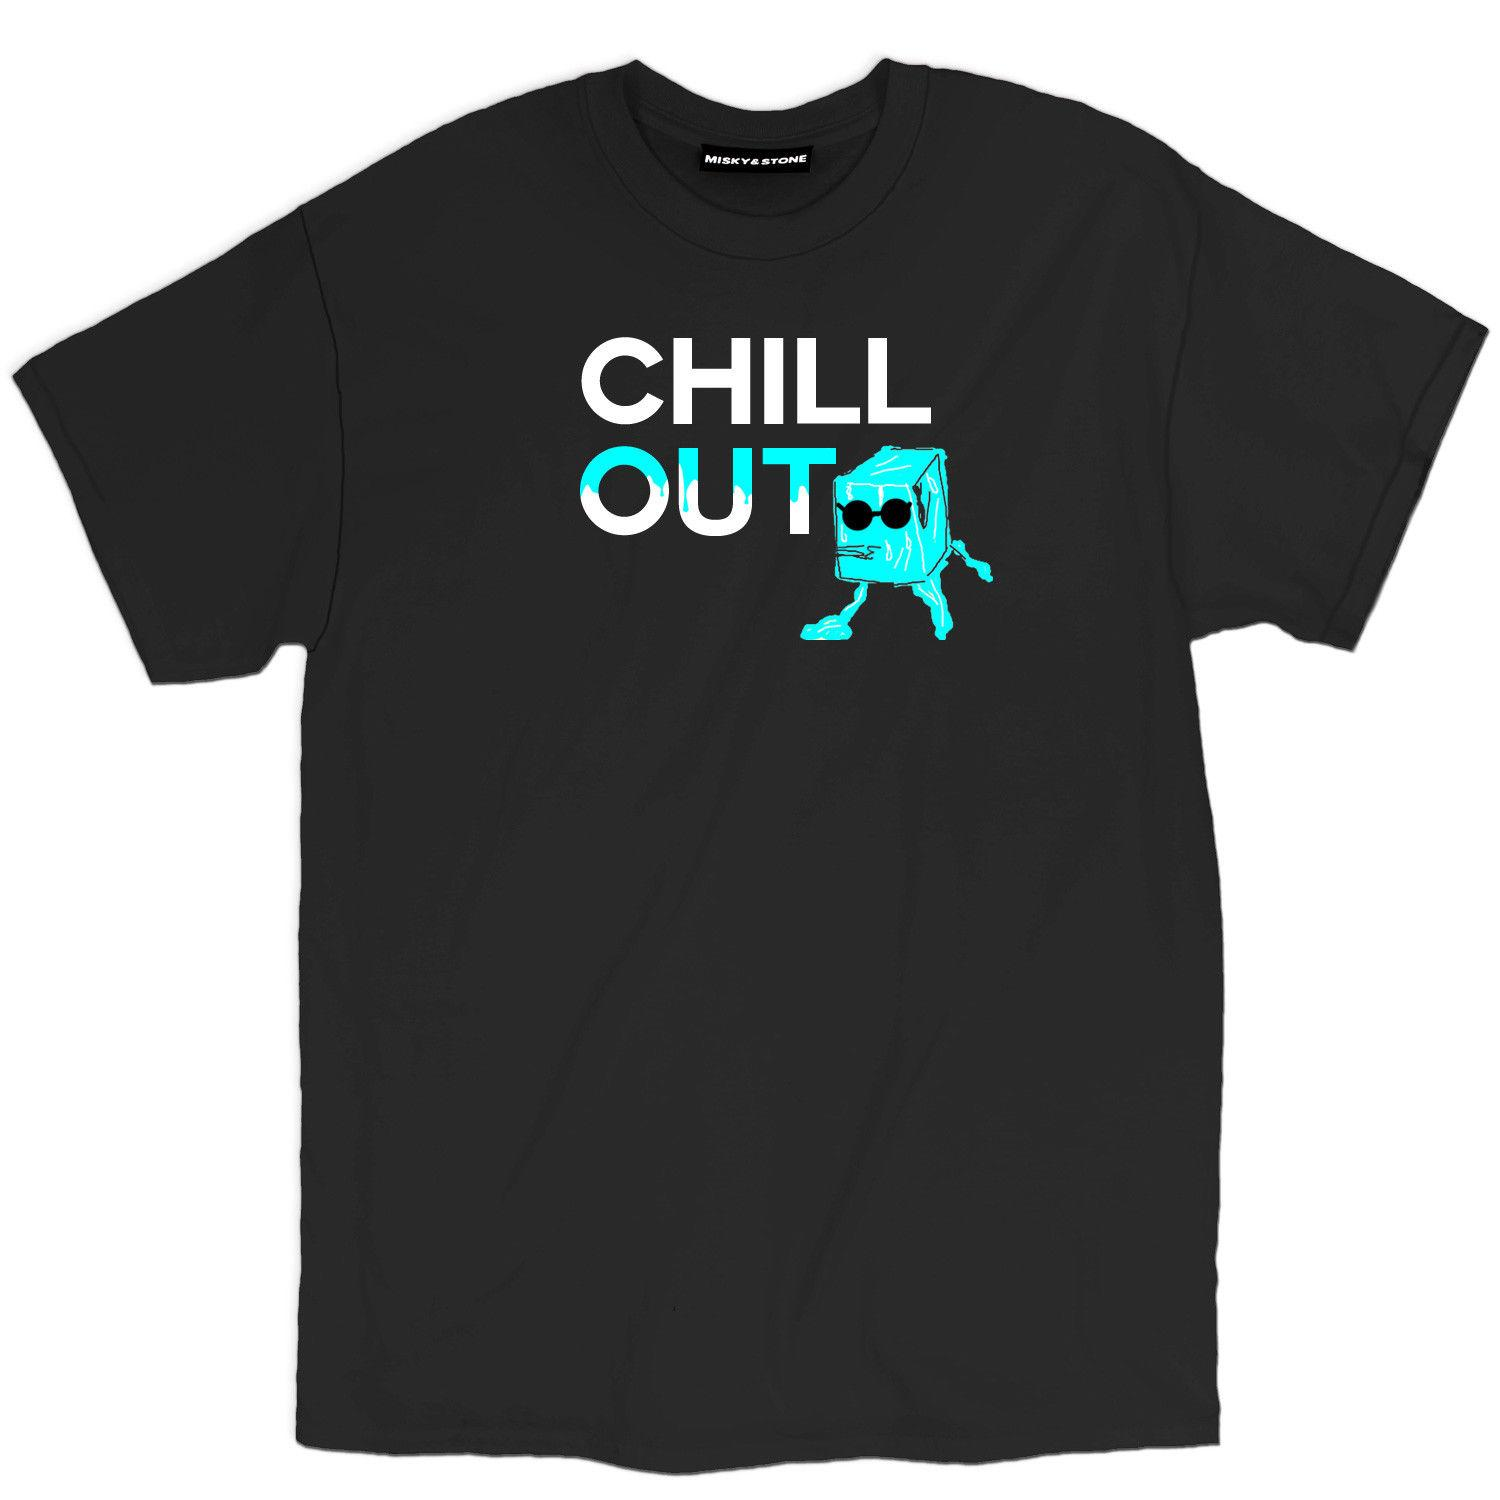 Misky & Stone Chill Out Ice Cube With Shades Loose Fit Unisex Funny Humor Tee